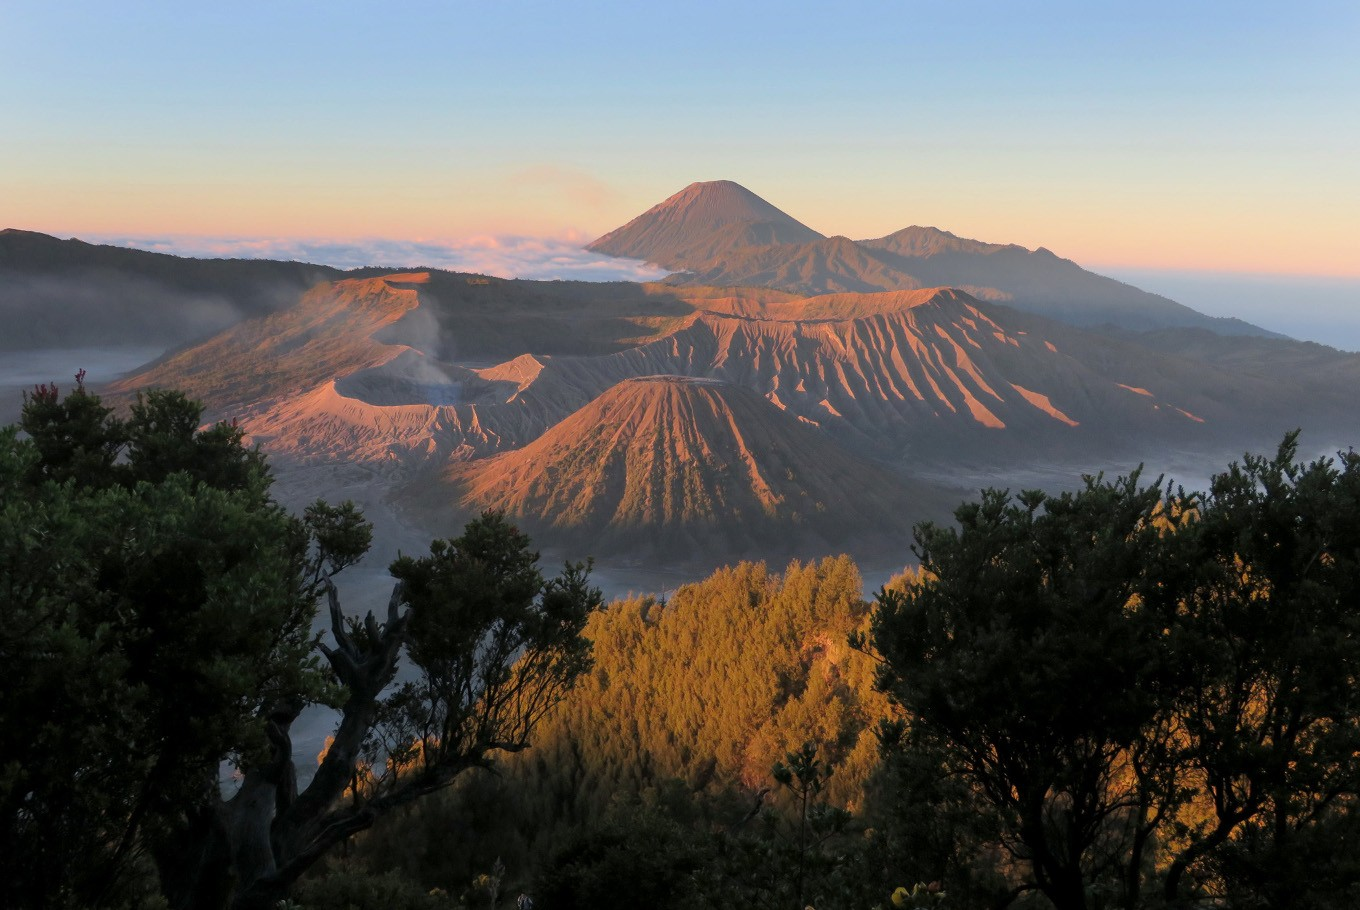 mount bromo scenery from distance